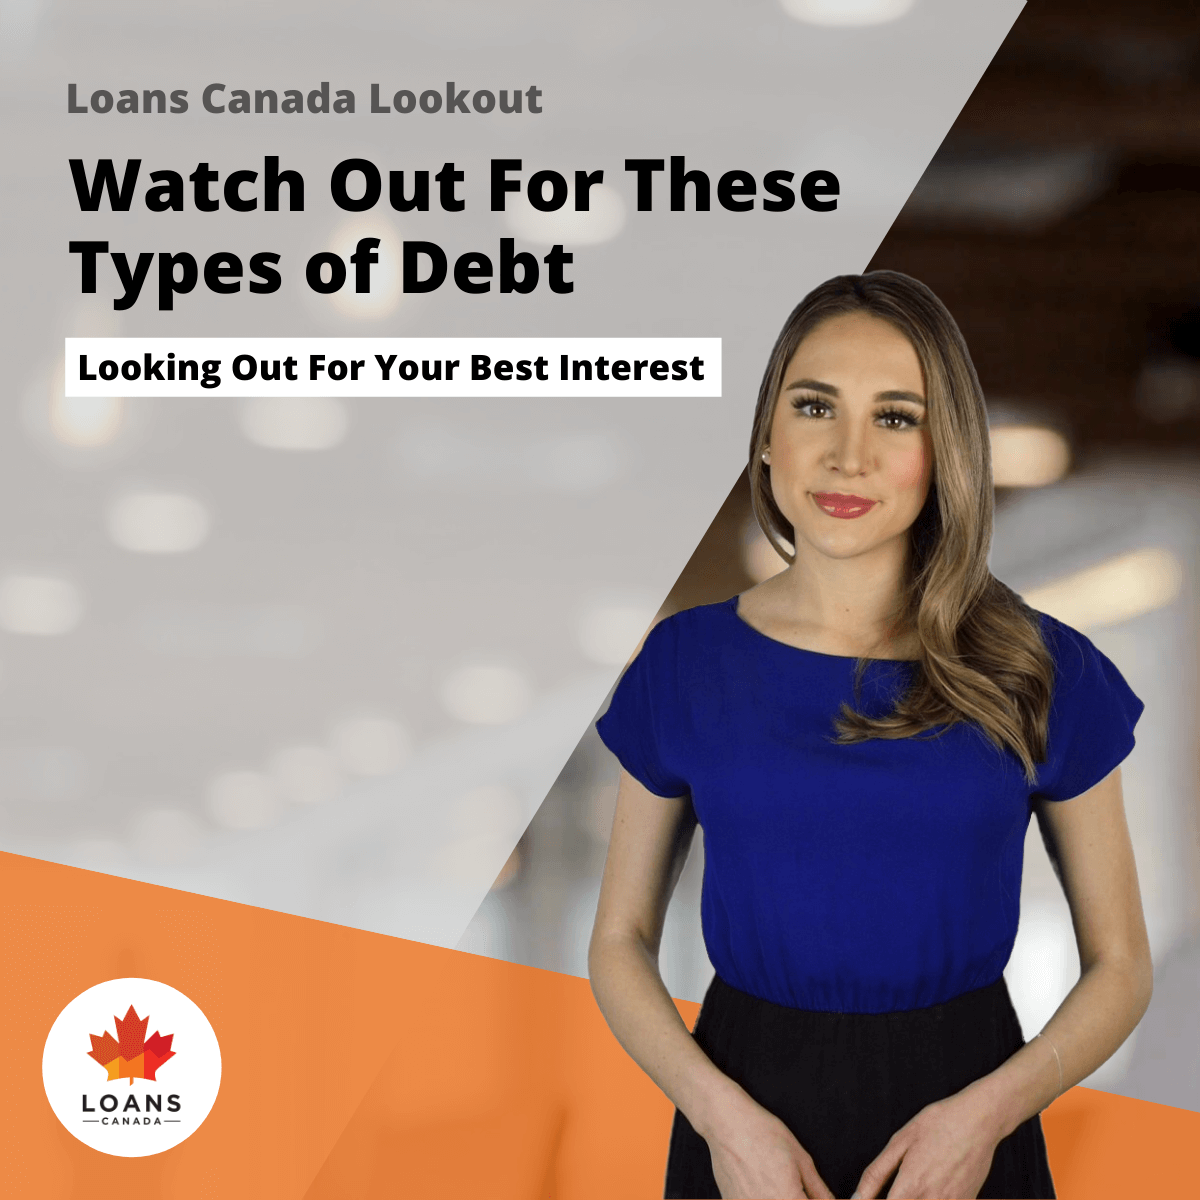 Watch Our For These Types Of Debt